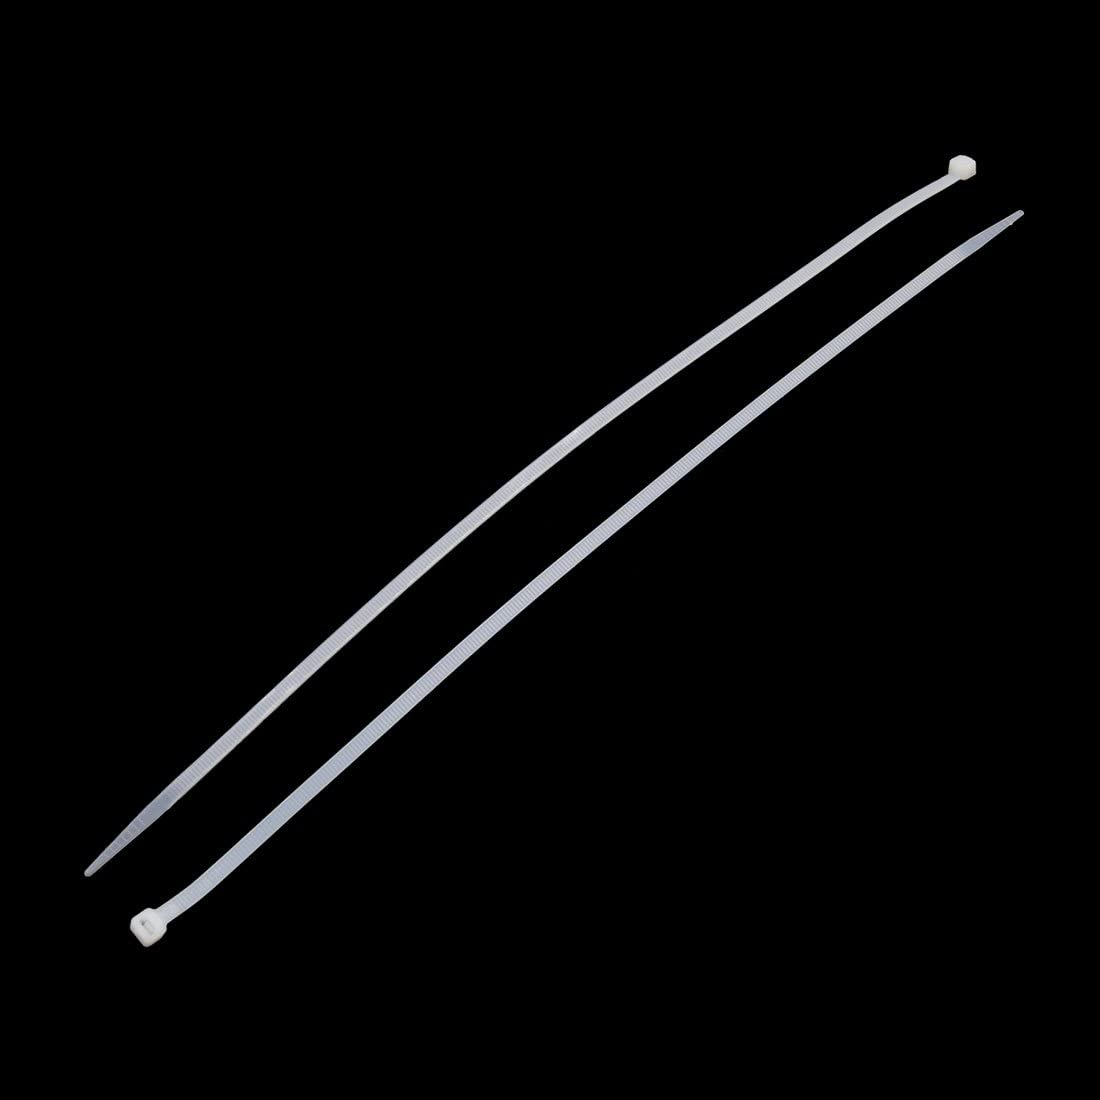 uxcell 102Pcs 400mm x 8mm White Nylon Fastening Cable Zip Tie Fasten Wrap Strap for Car